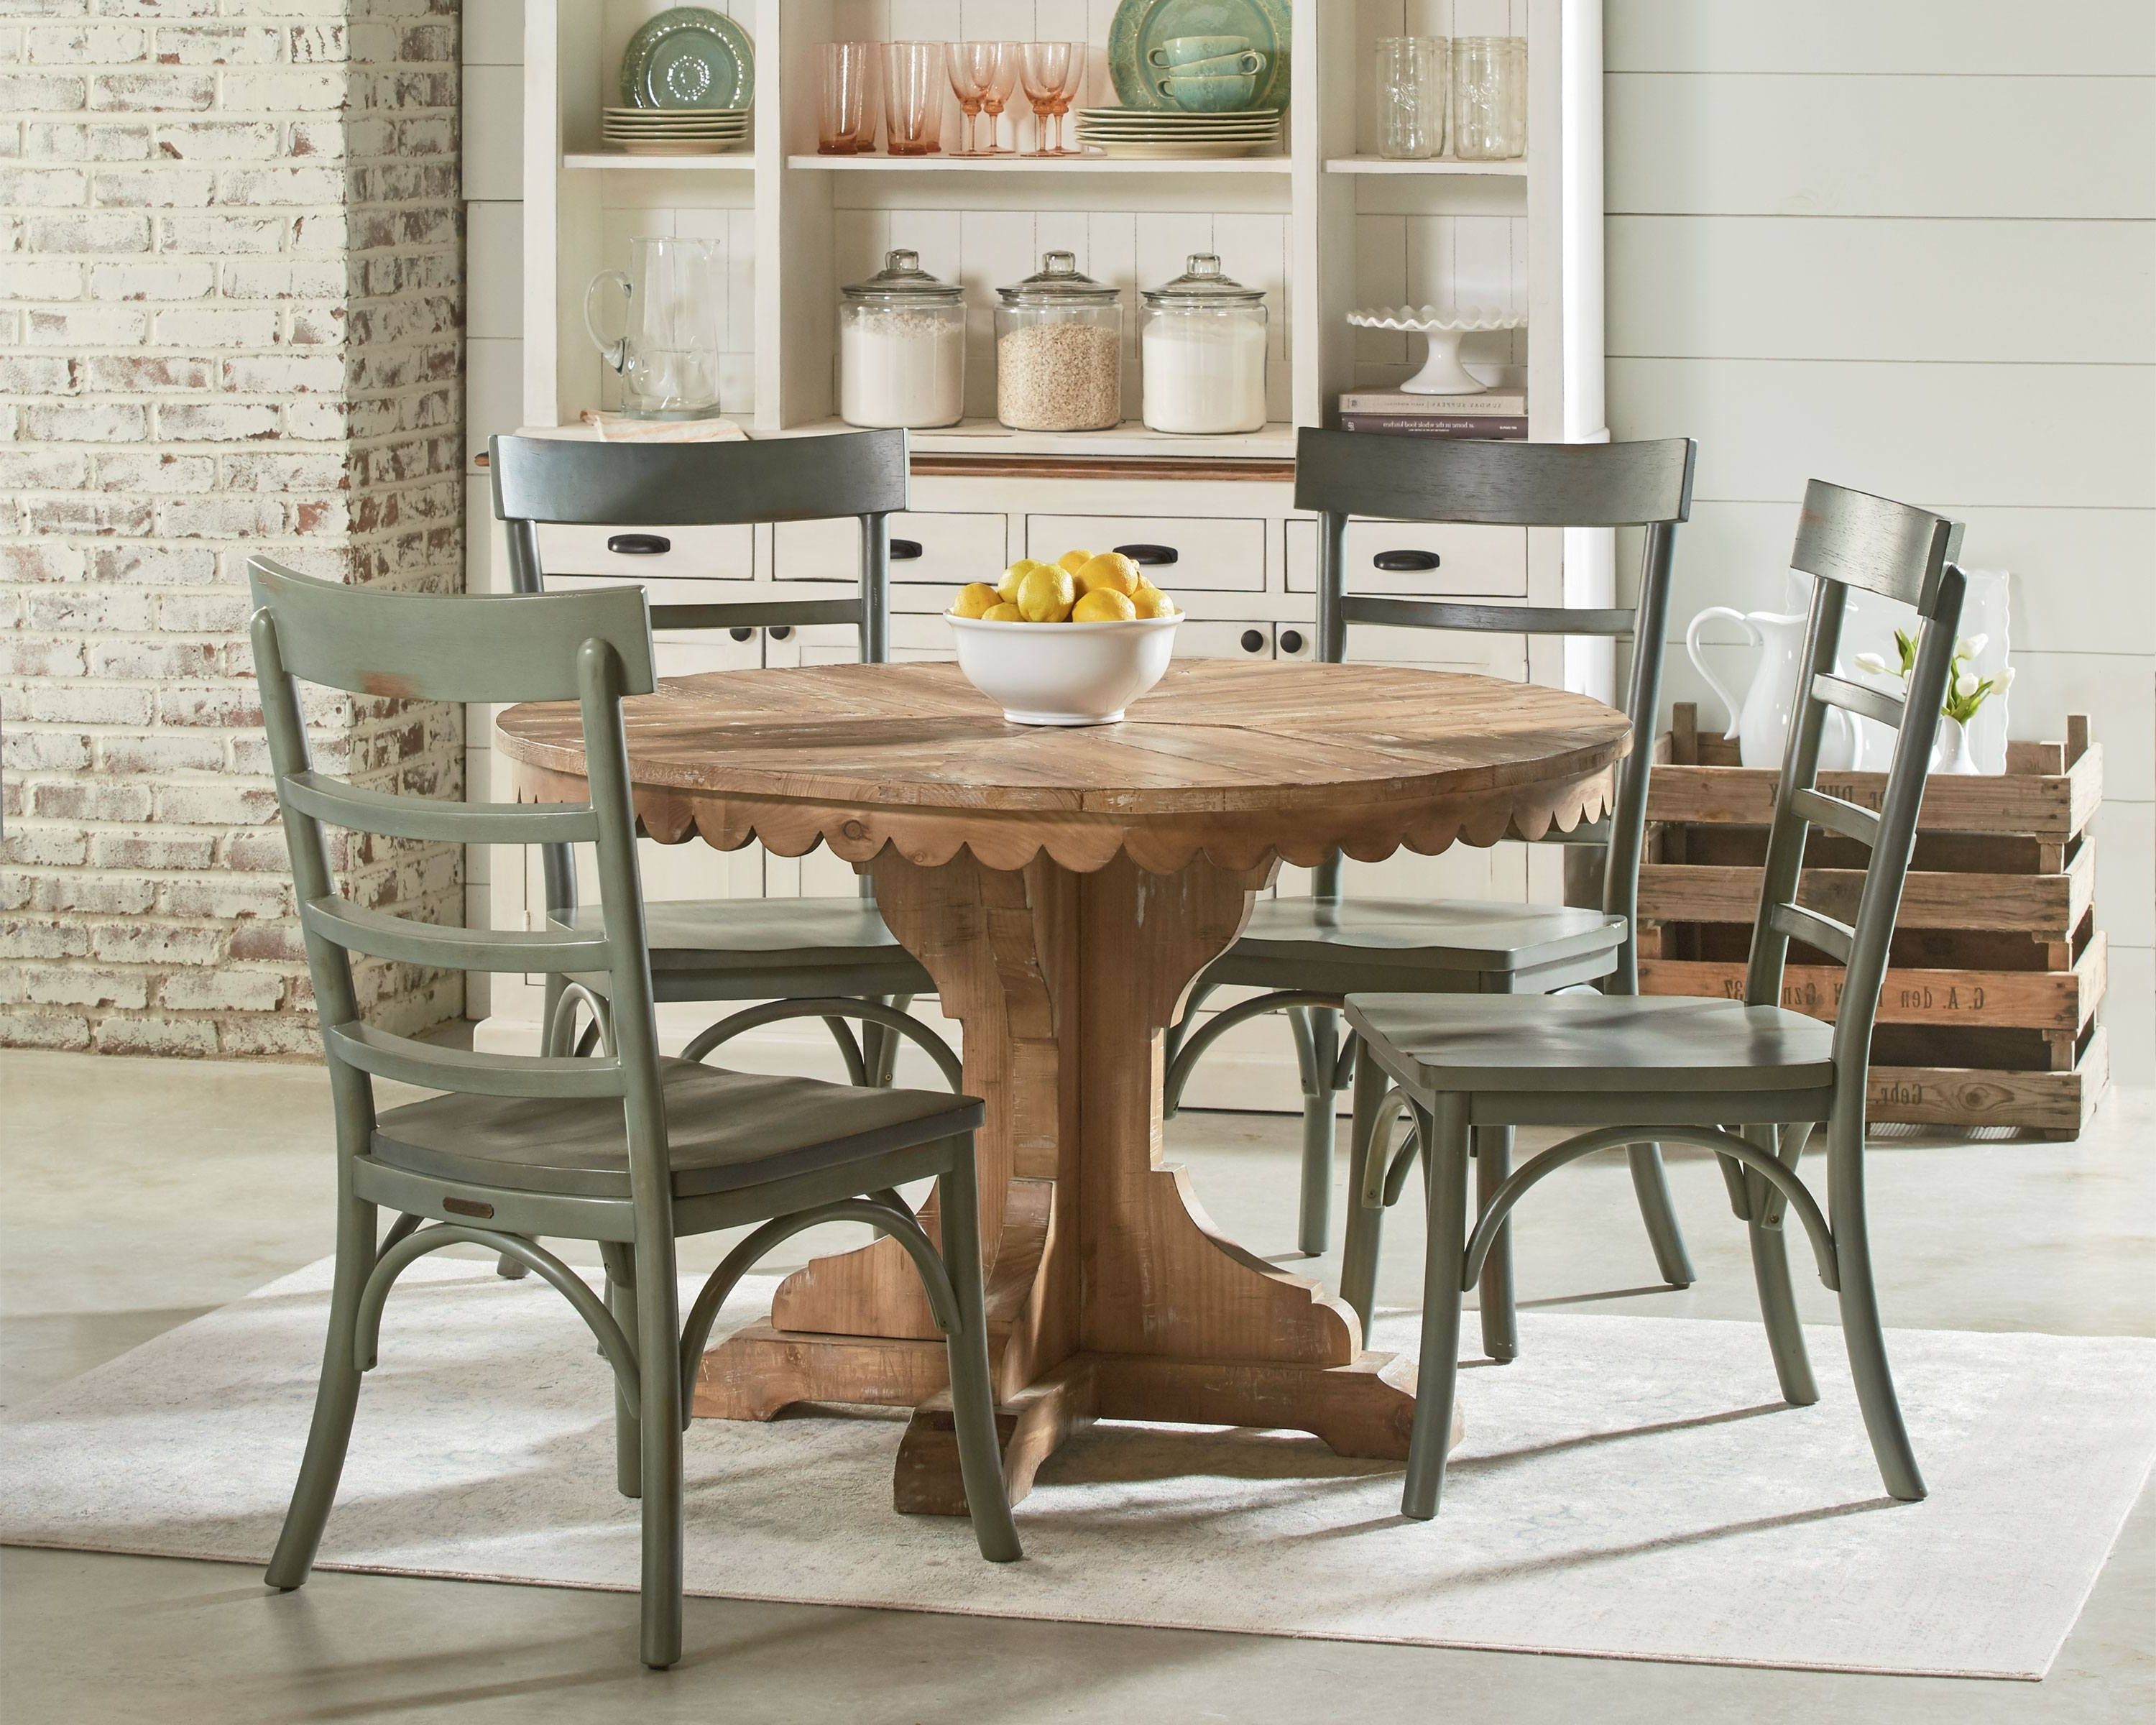 Top Tier + Harper – Magnolia Home For Well Known Magnolia Home Harper Patina Side Chairs (View 16 of 20)